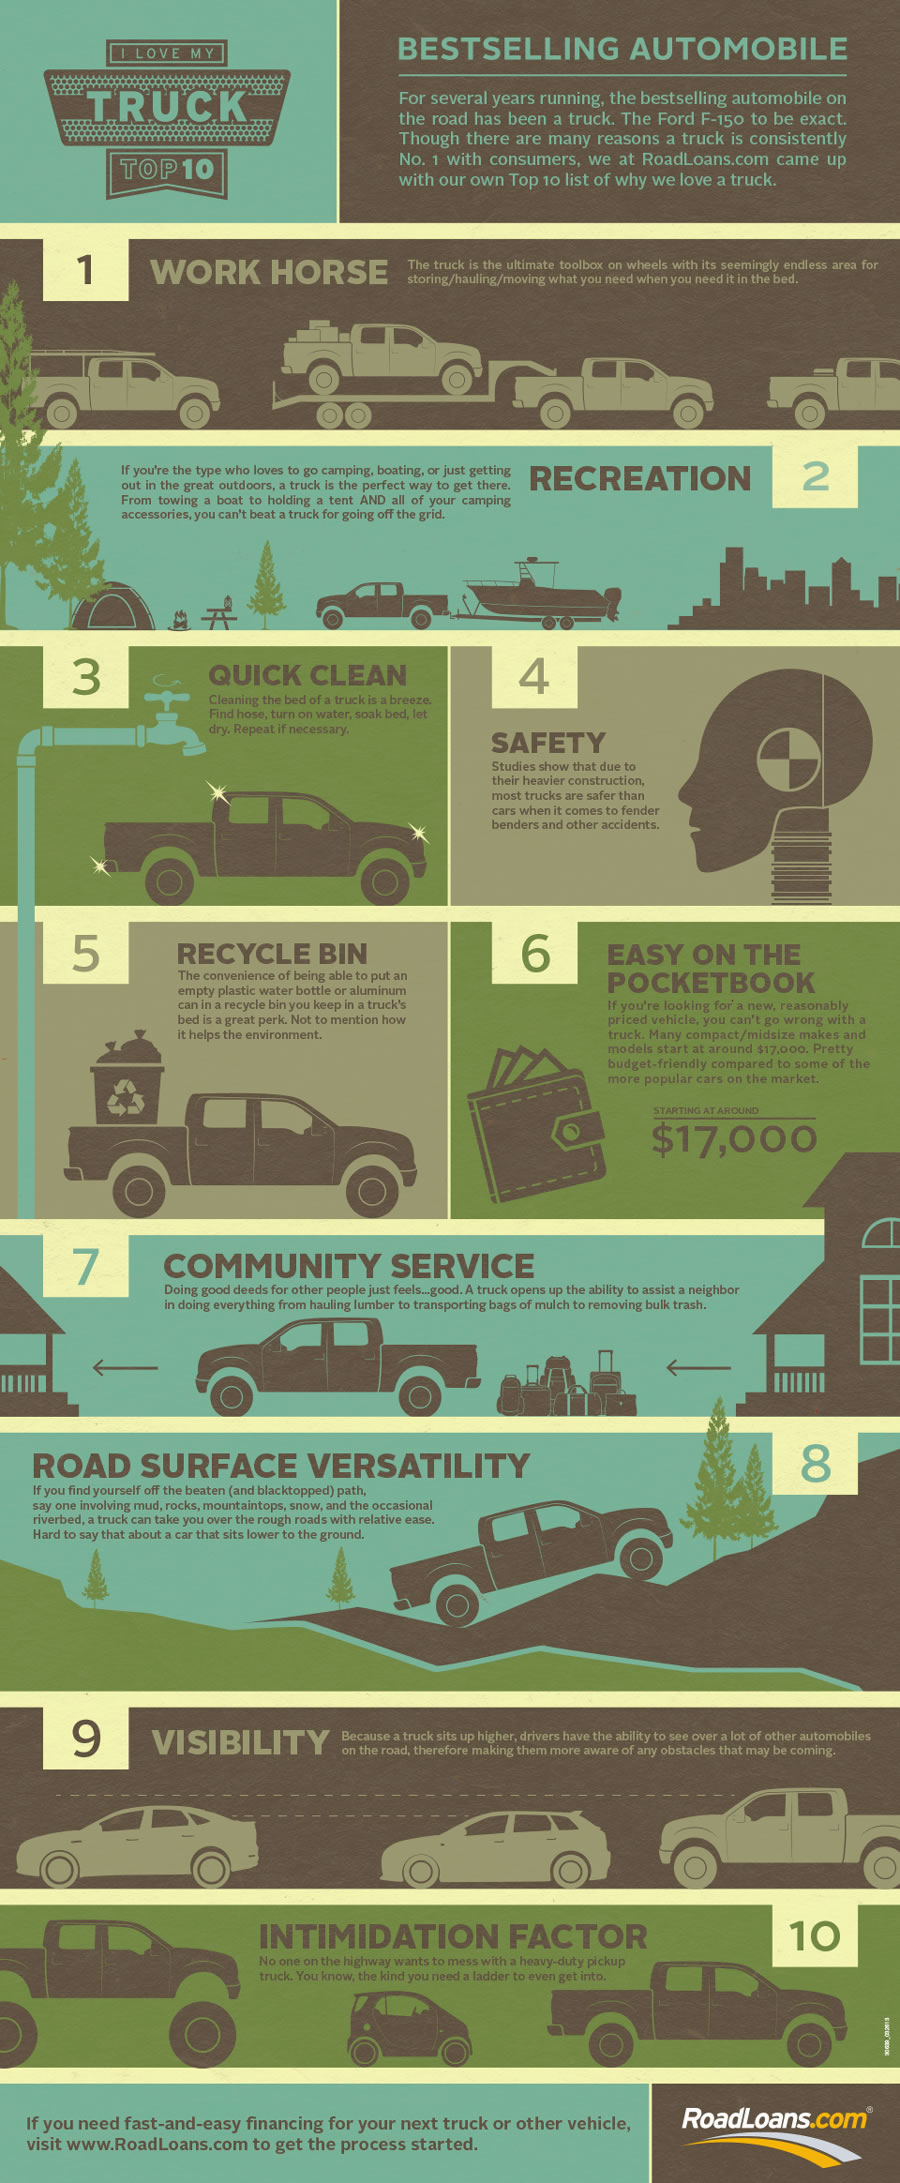 Roadloans Bad Credit Auto Loans >> Infographic: 10 reasons we love a truck | RoadLoans